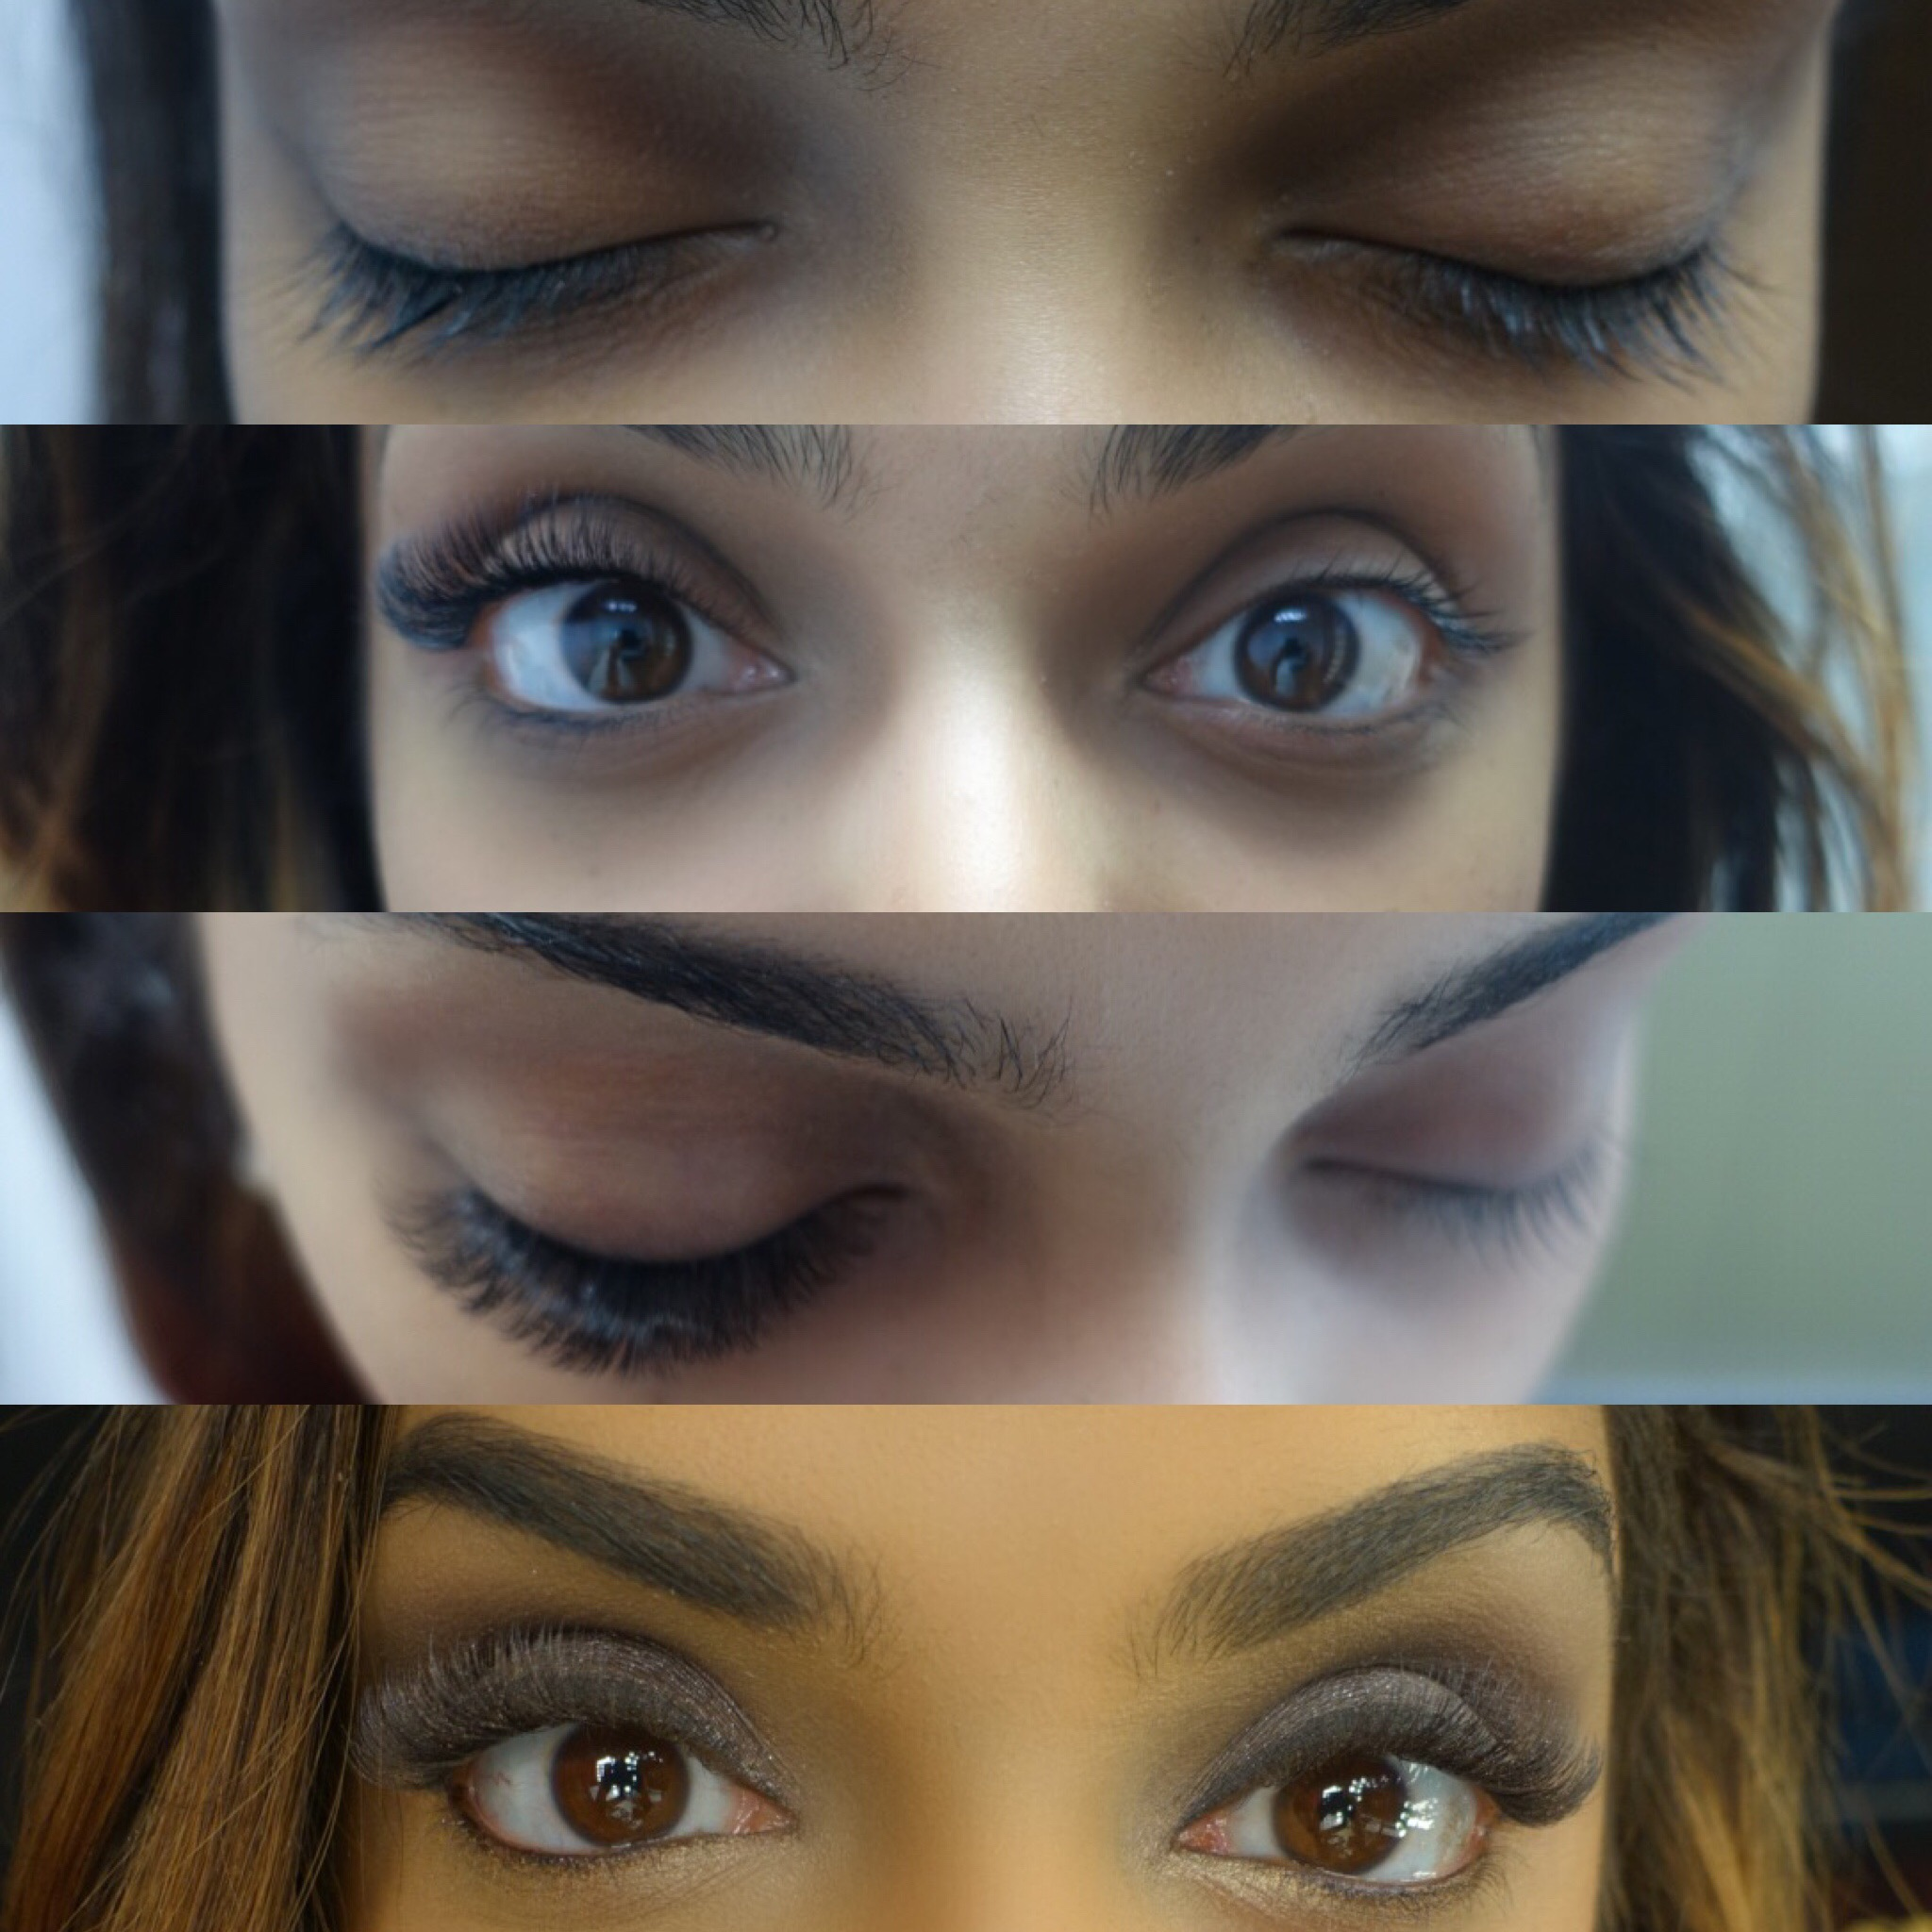 FROM TOP TO BOTTOM: 1) before extensions 2) one eye with extensions 3) view from above of one eye with extensions 4) final product